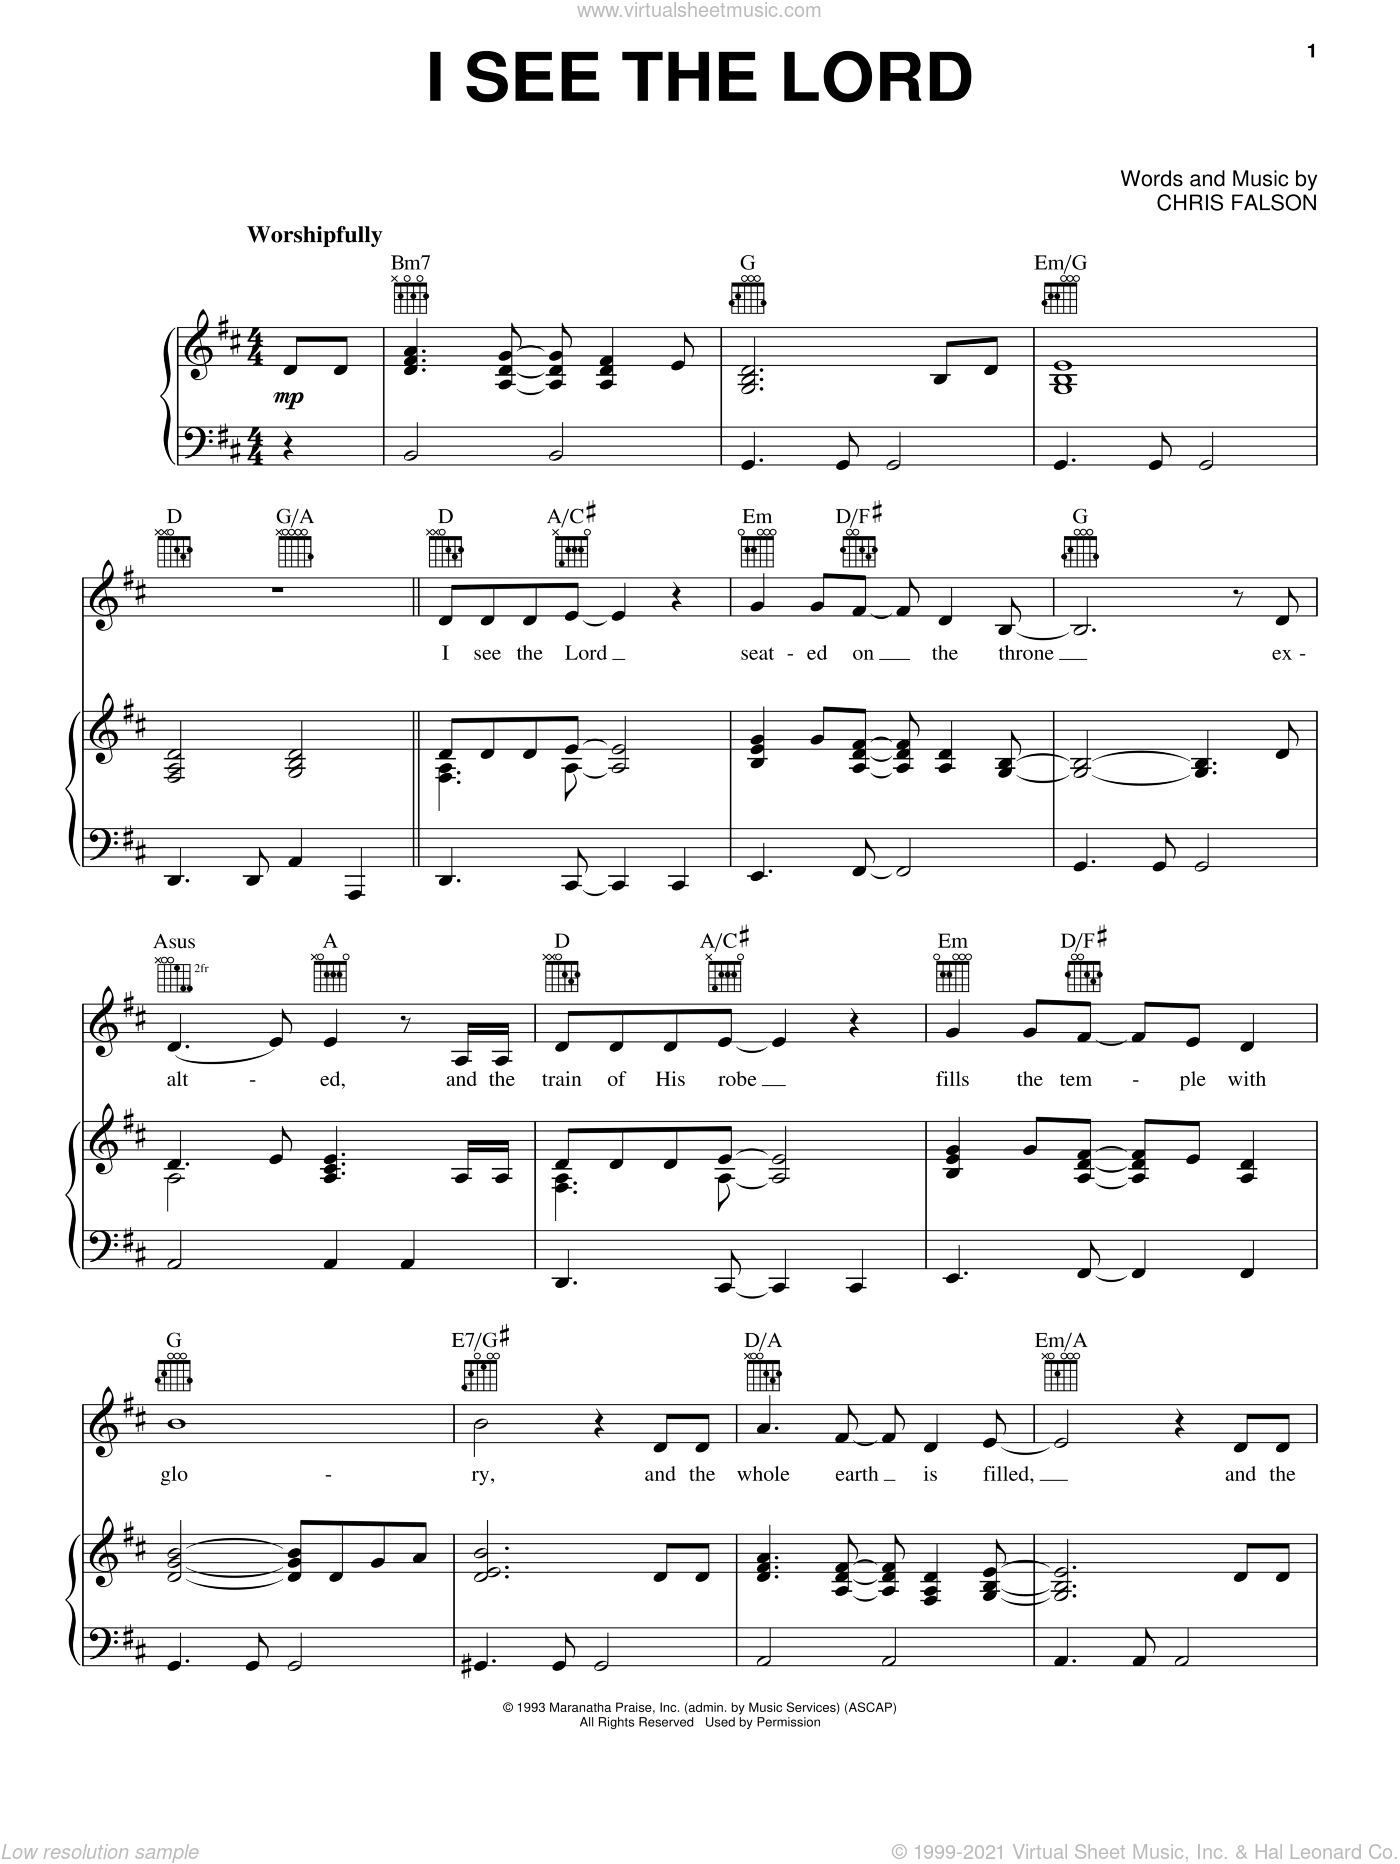 I See The Lord sheet music for voice, piano or guitar by Chris Falson, intermediate voice, piano or guitar. Score Image Preview.